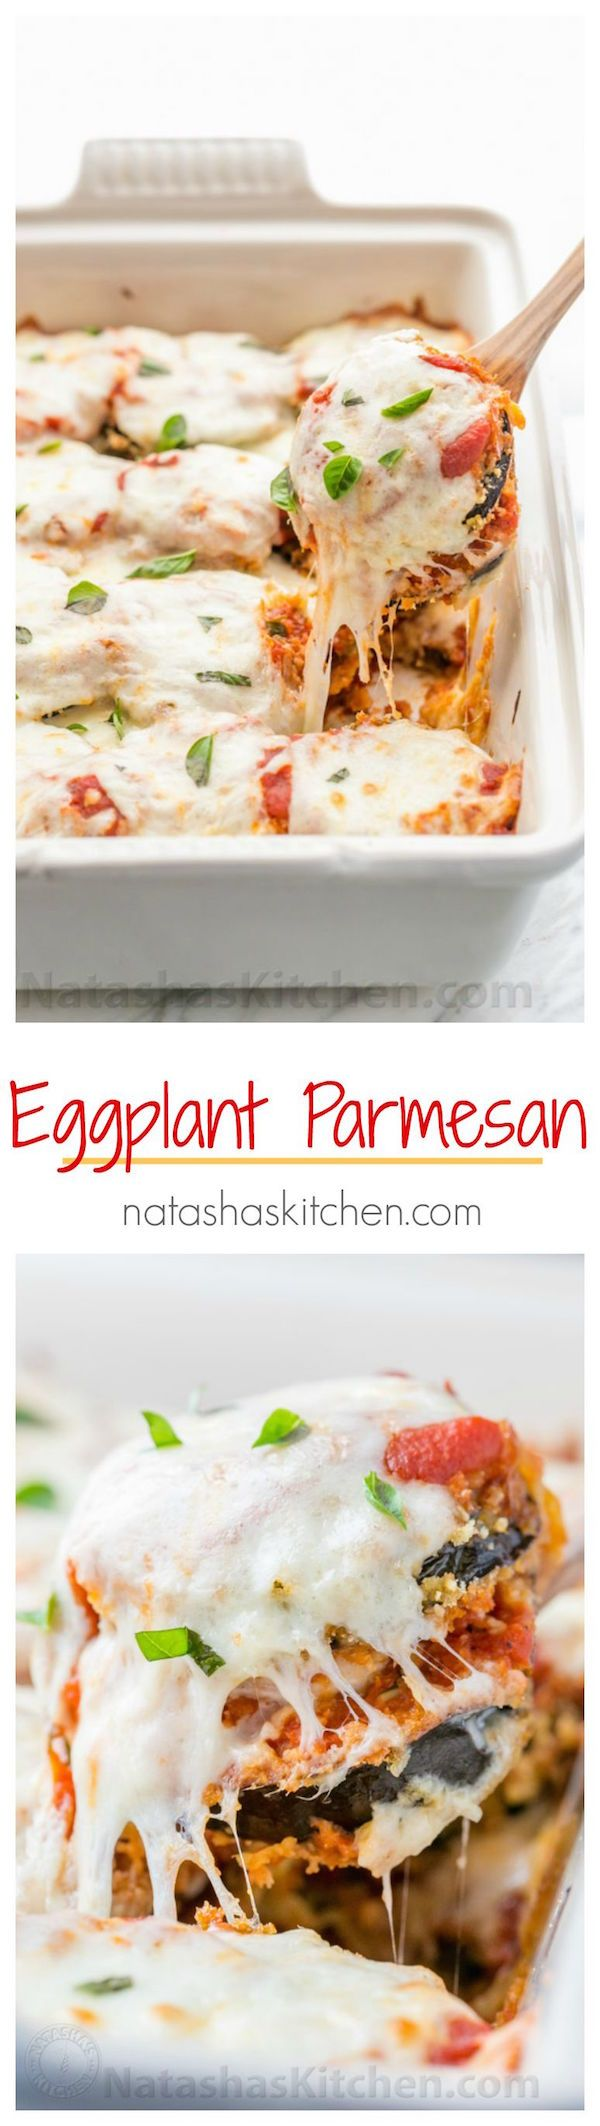 Eggplant Parmesan: crisp eggplant layered with marinara and plenty of melted cheese (and it's baked, not fried!) Love me a cheesy eggplant parmesan recipe! | natashaskitchen.com